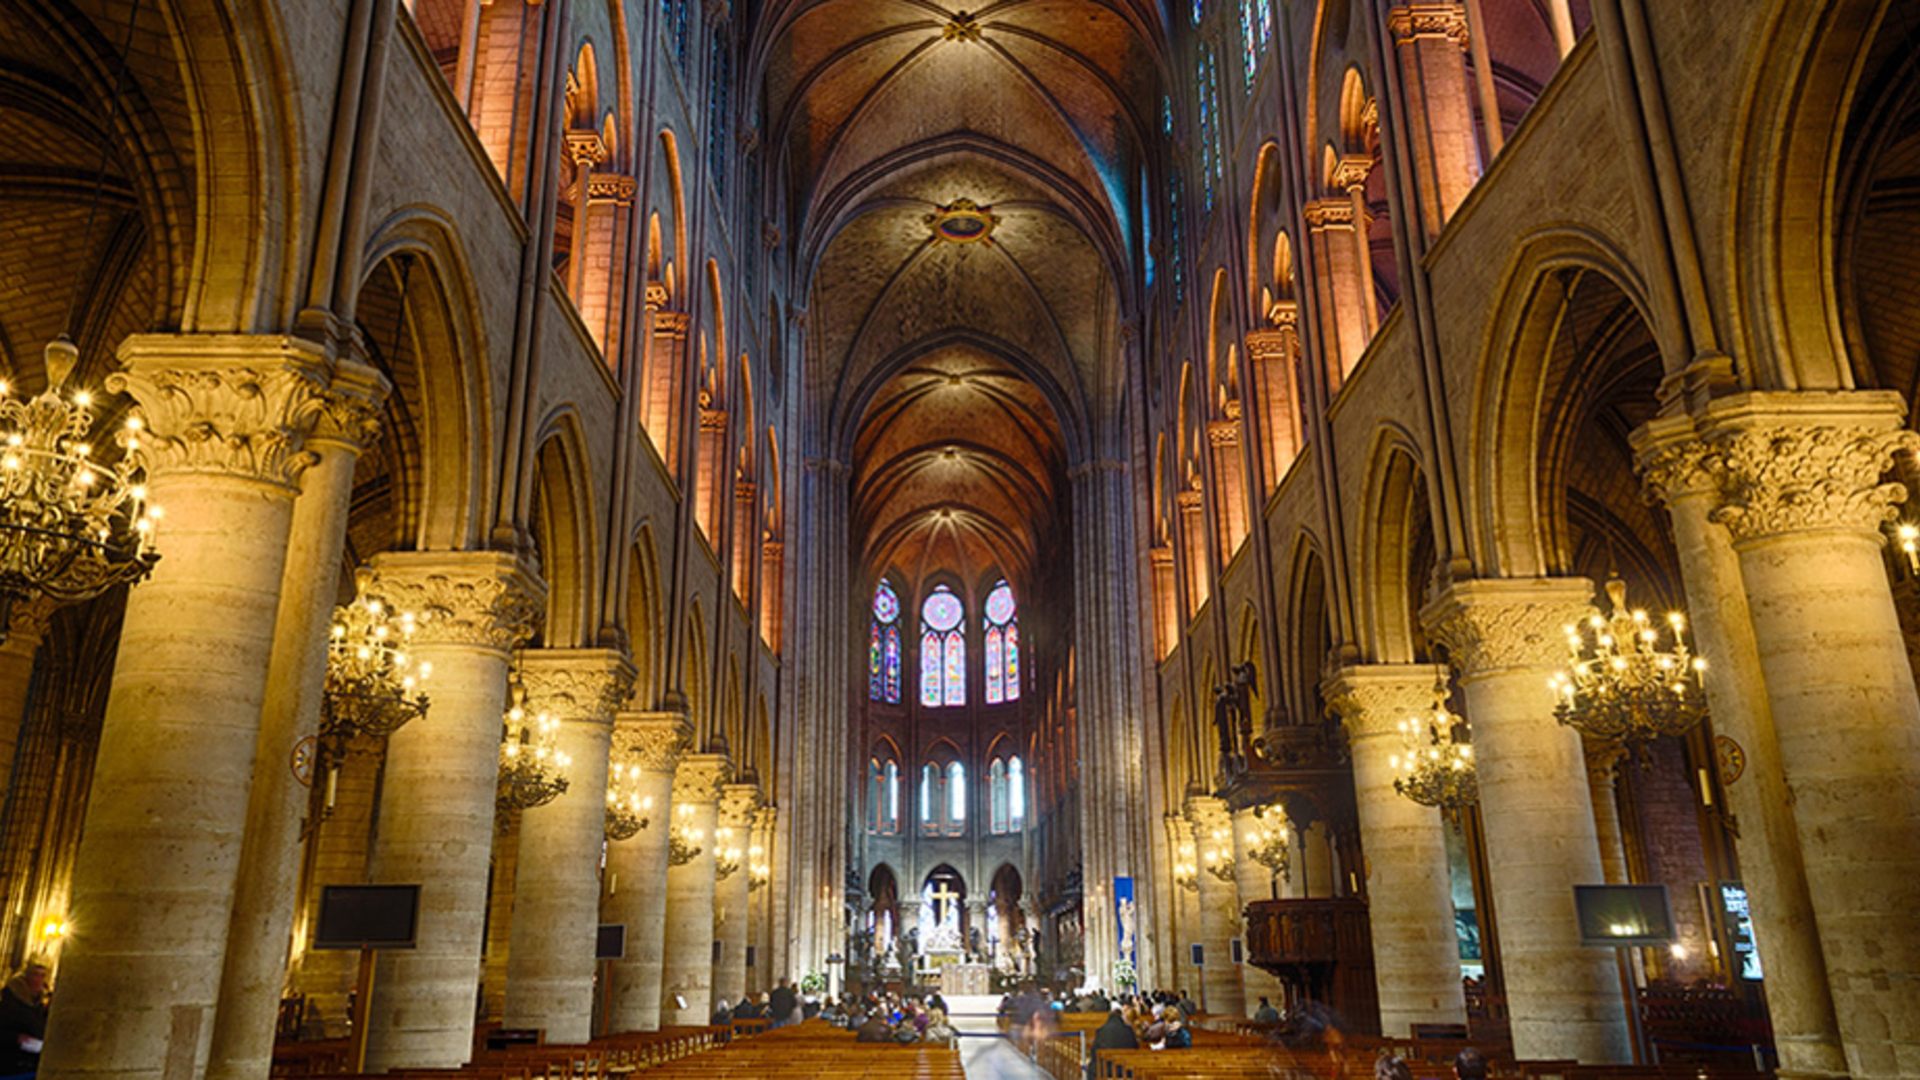 Interior of the Notre Dame Cathedral, Paris, France